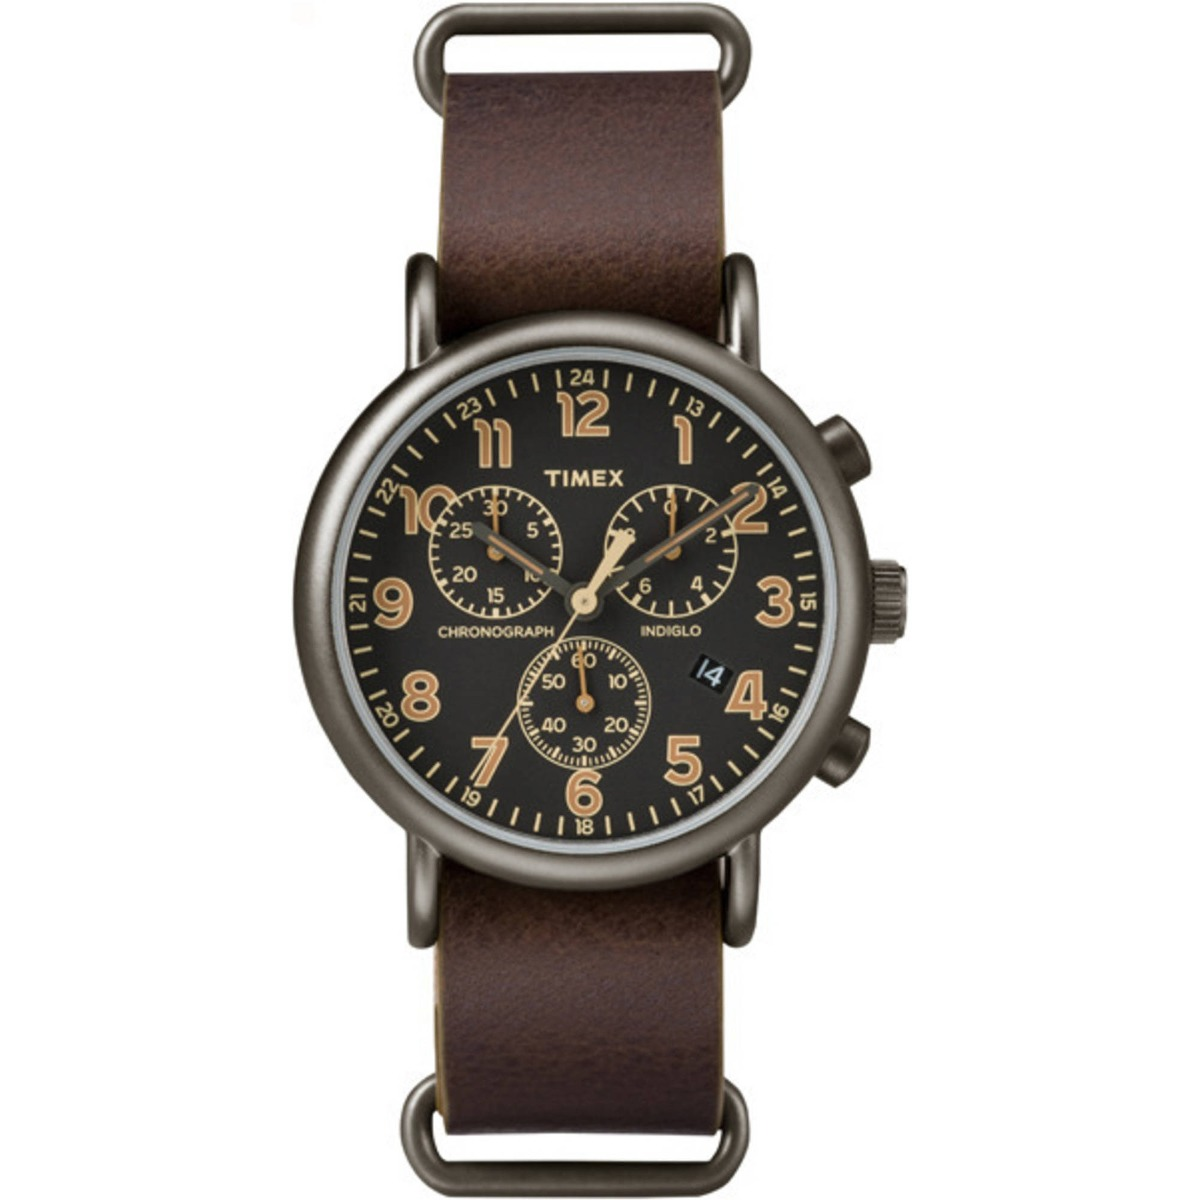 3a968911f78f Reloj Timex Weekender Para Hombres